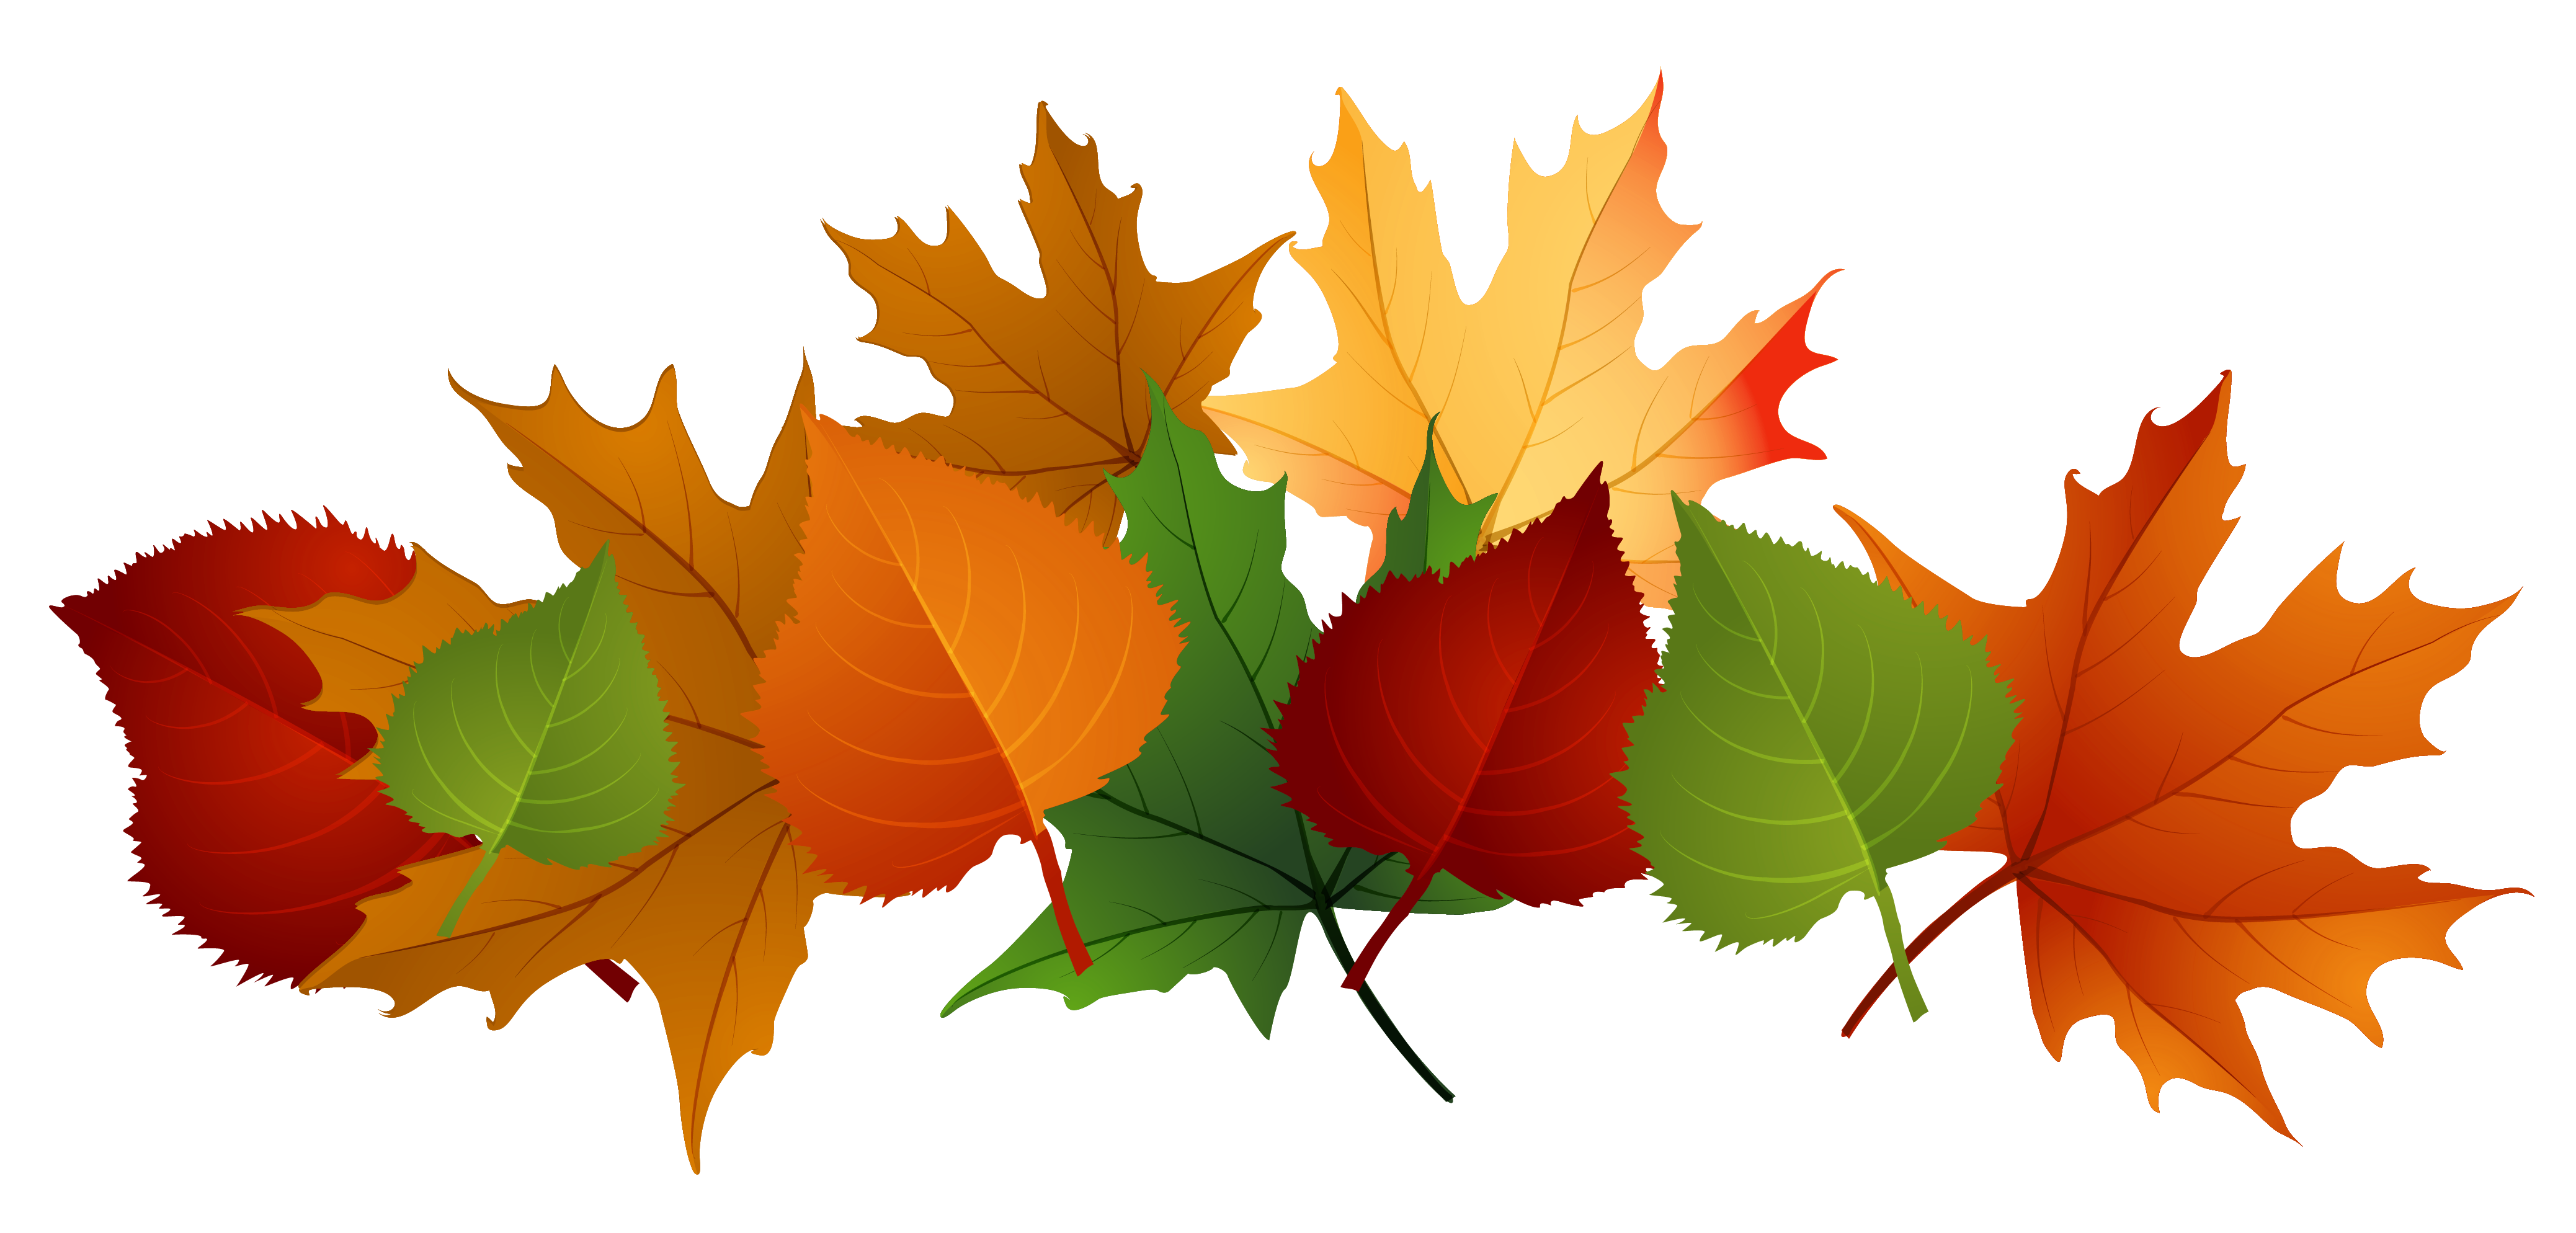 4153x1988 Falling Clipart Autumn Season